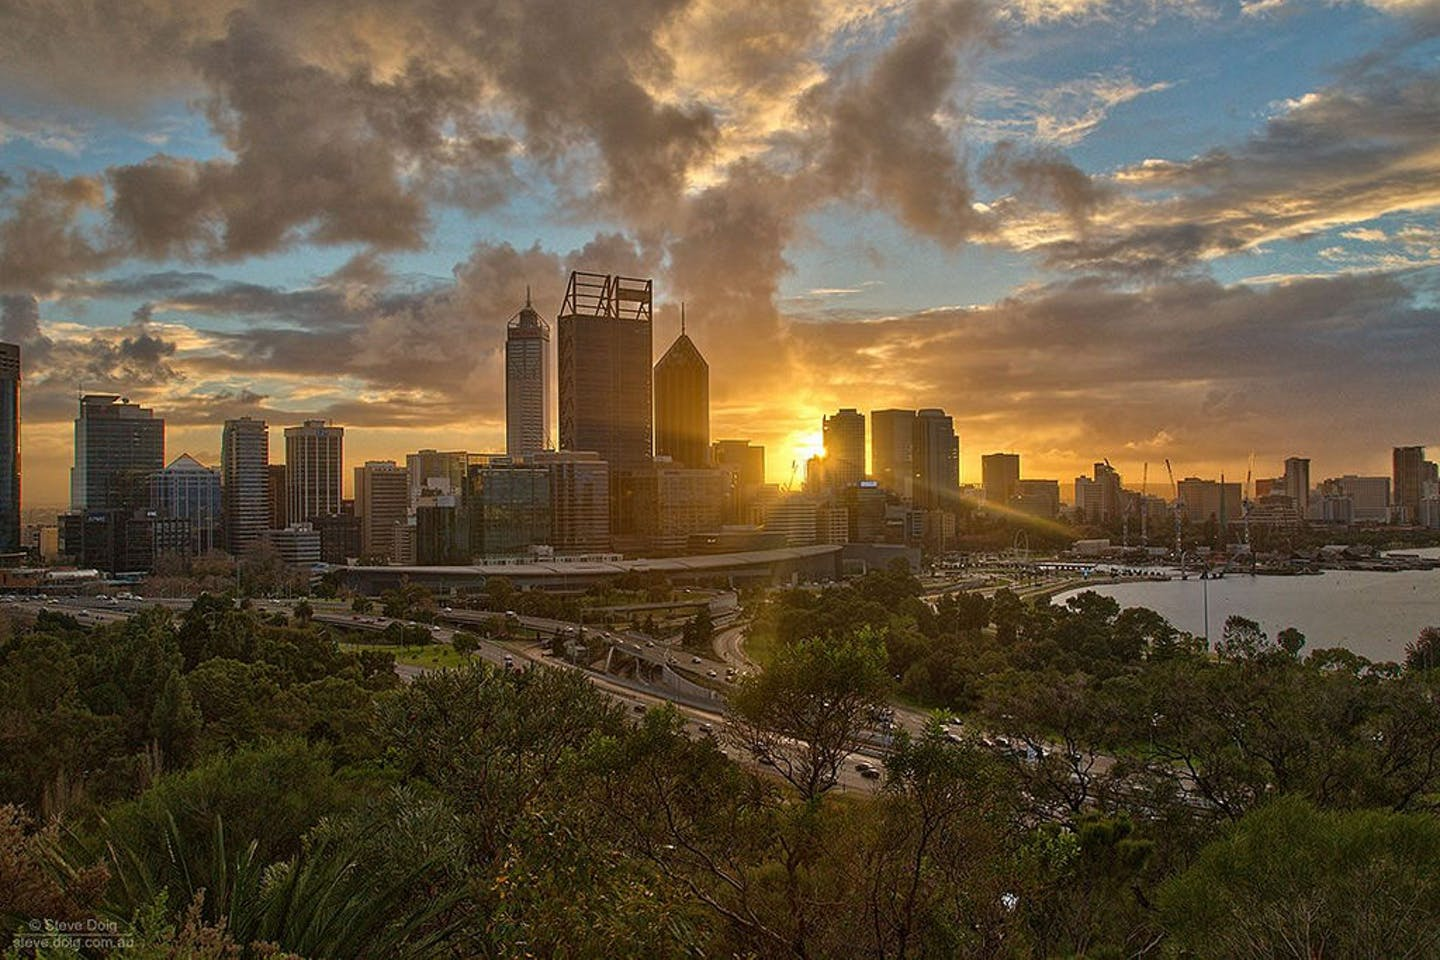 Sunrise behind Perth's central business district